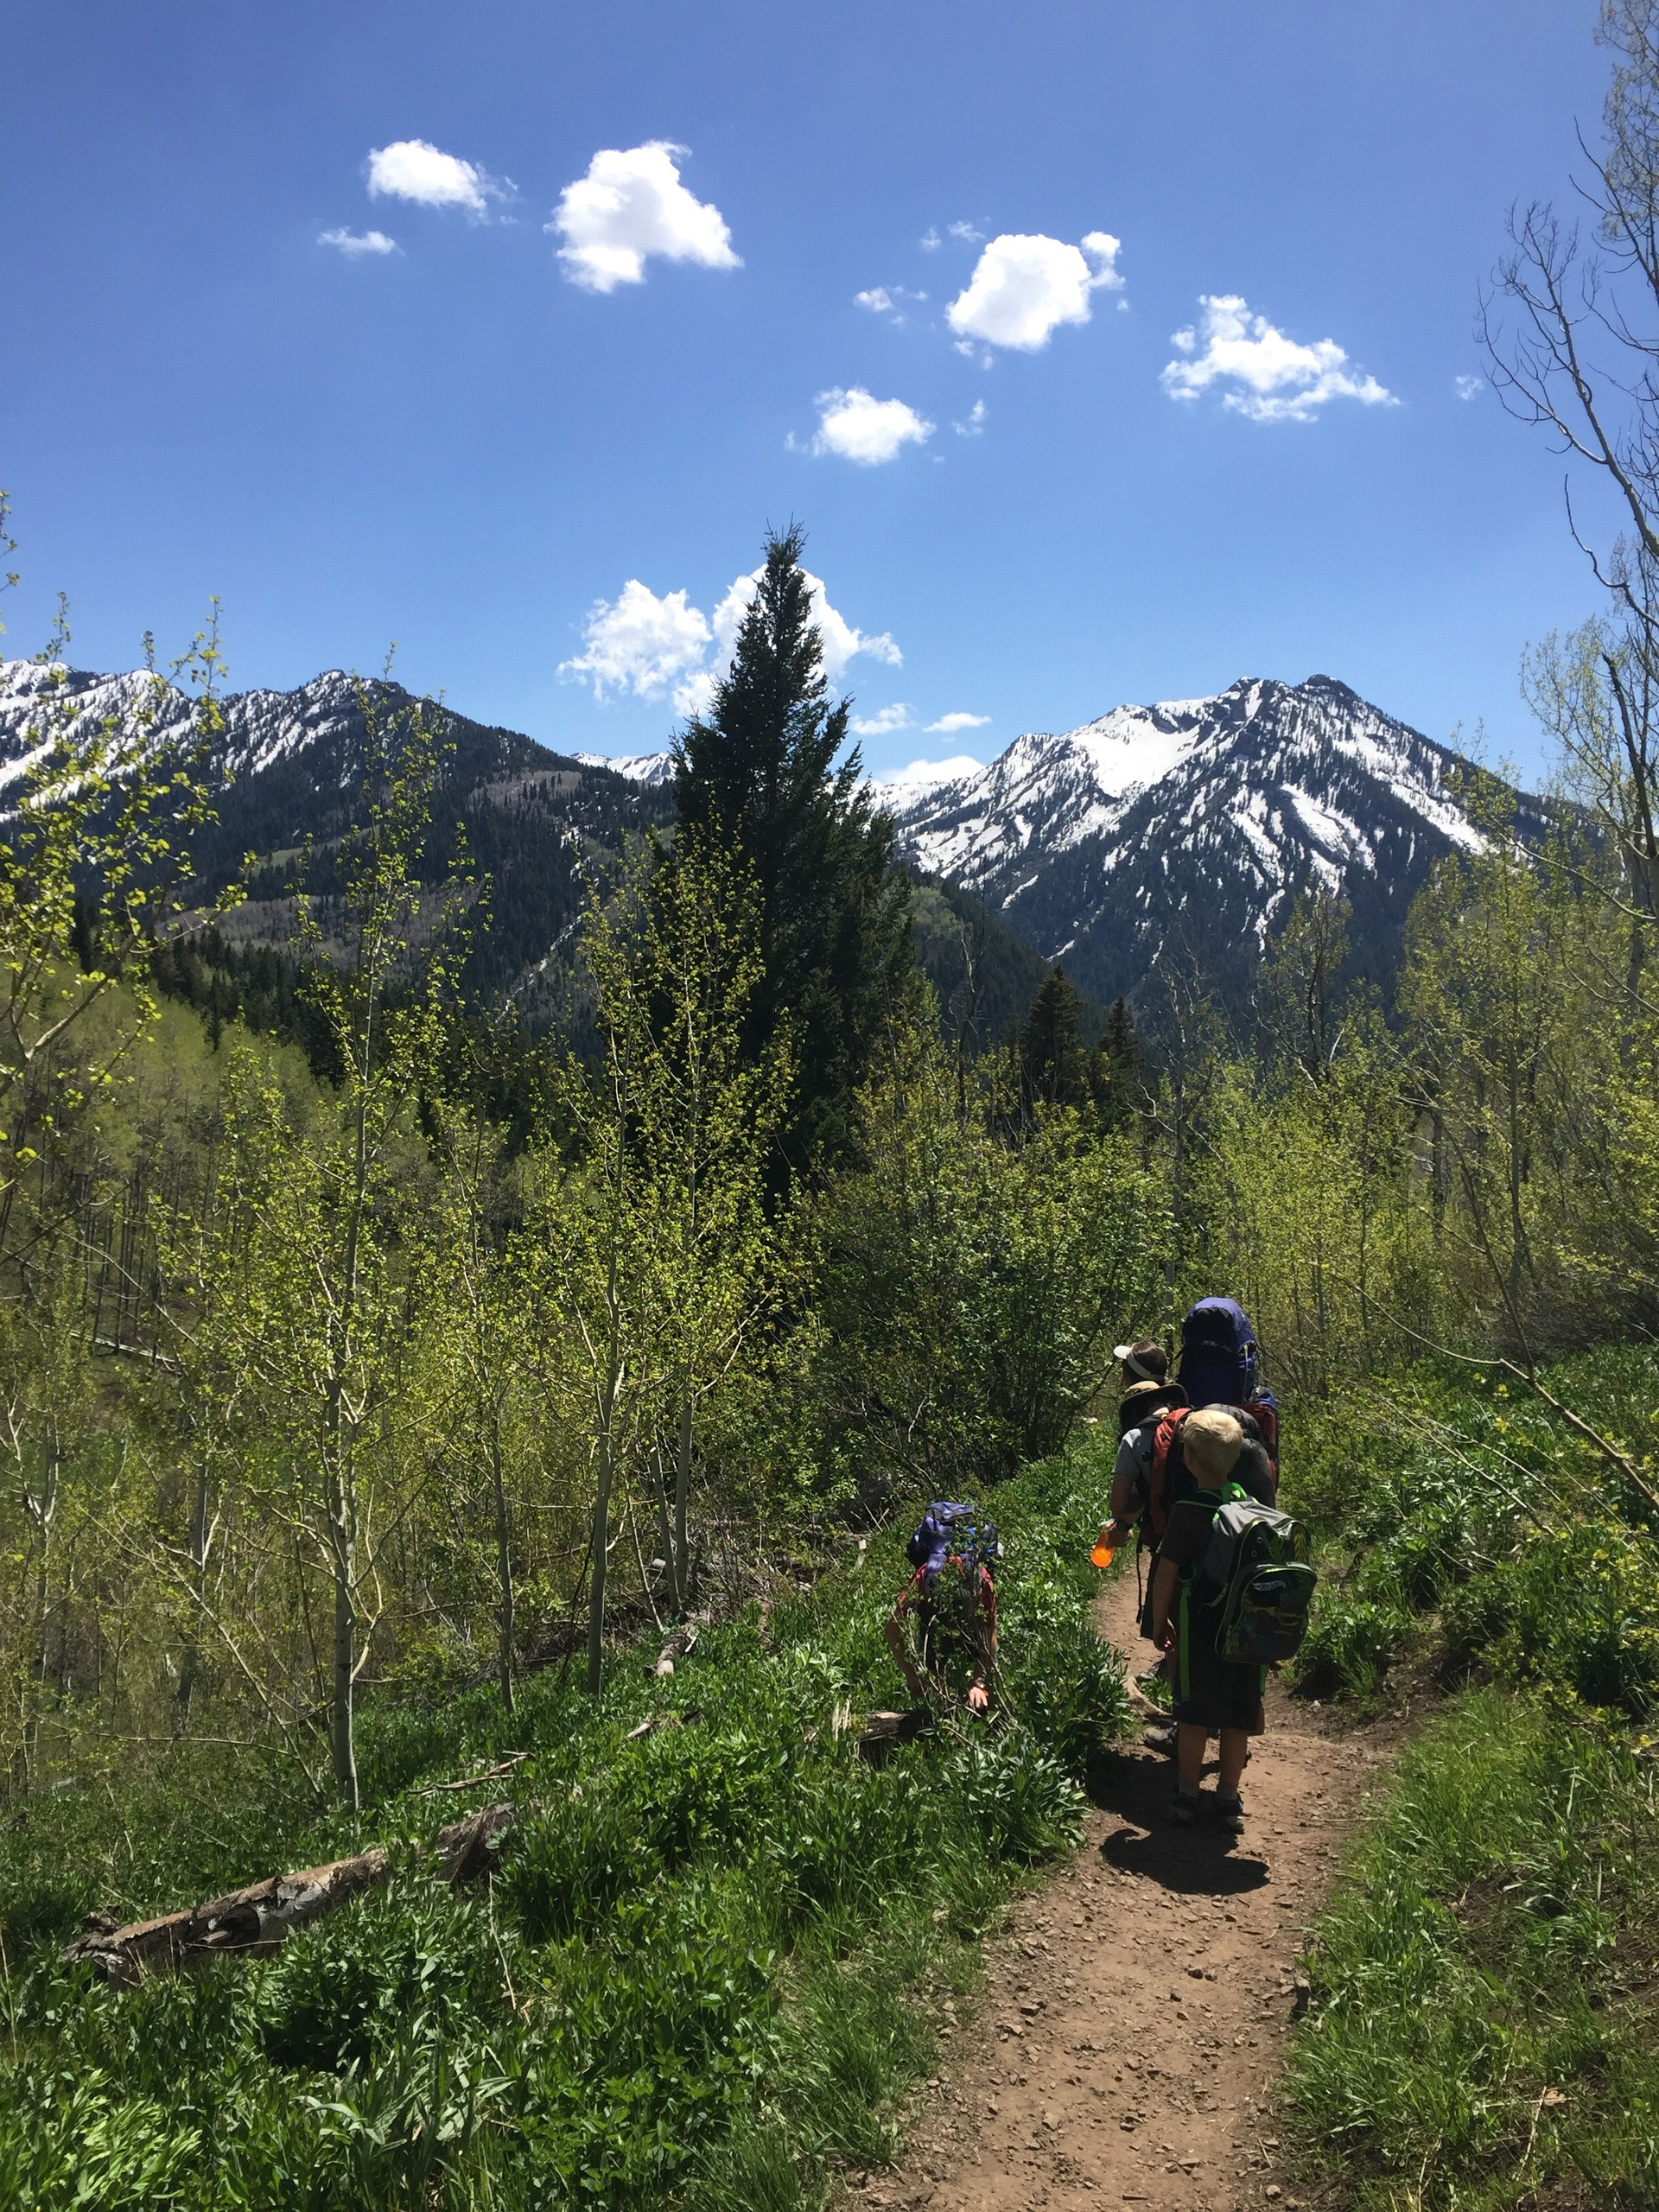 Backpacking with the kids in the Wasatch